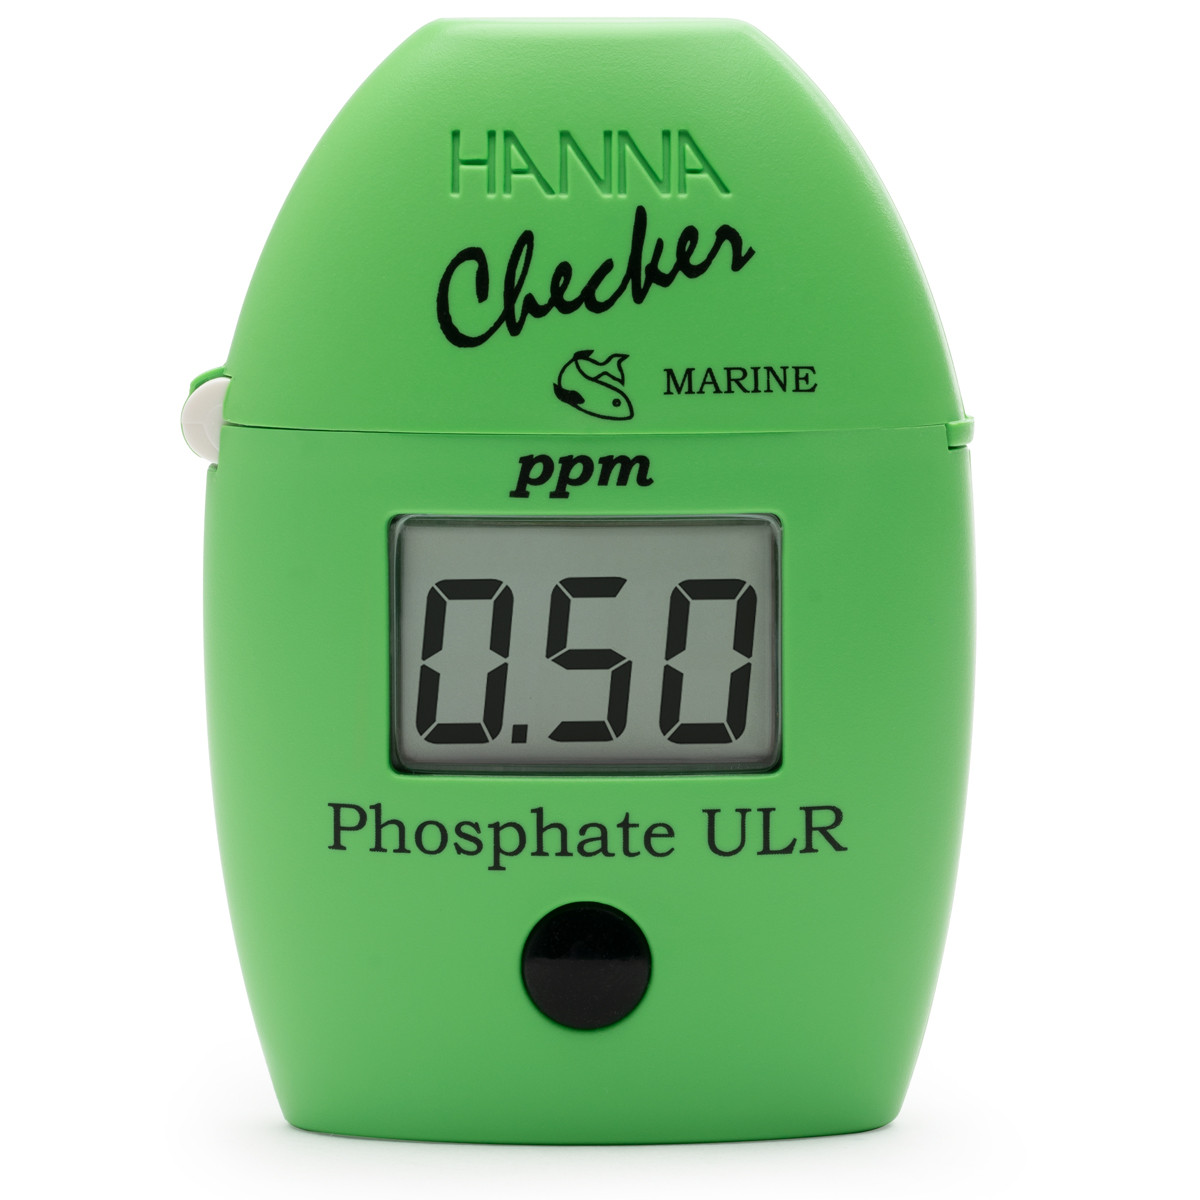 Marine Phosphate Ultra Low Range Colorimeter - Checker® HC